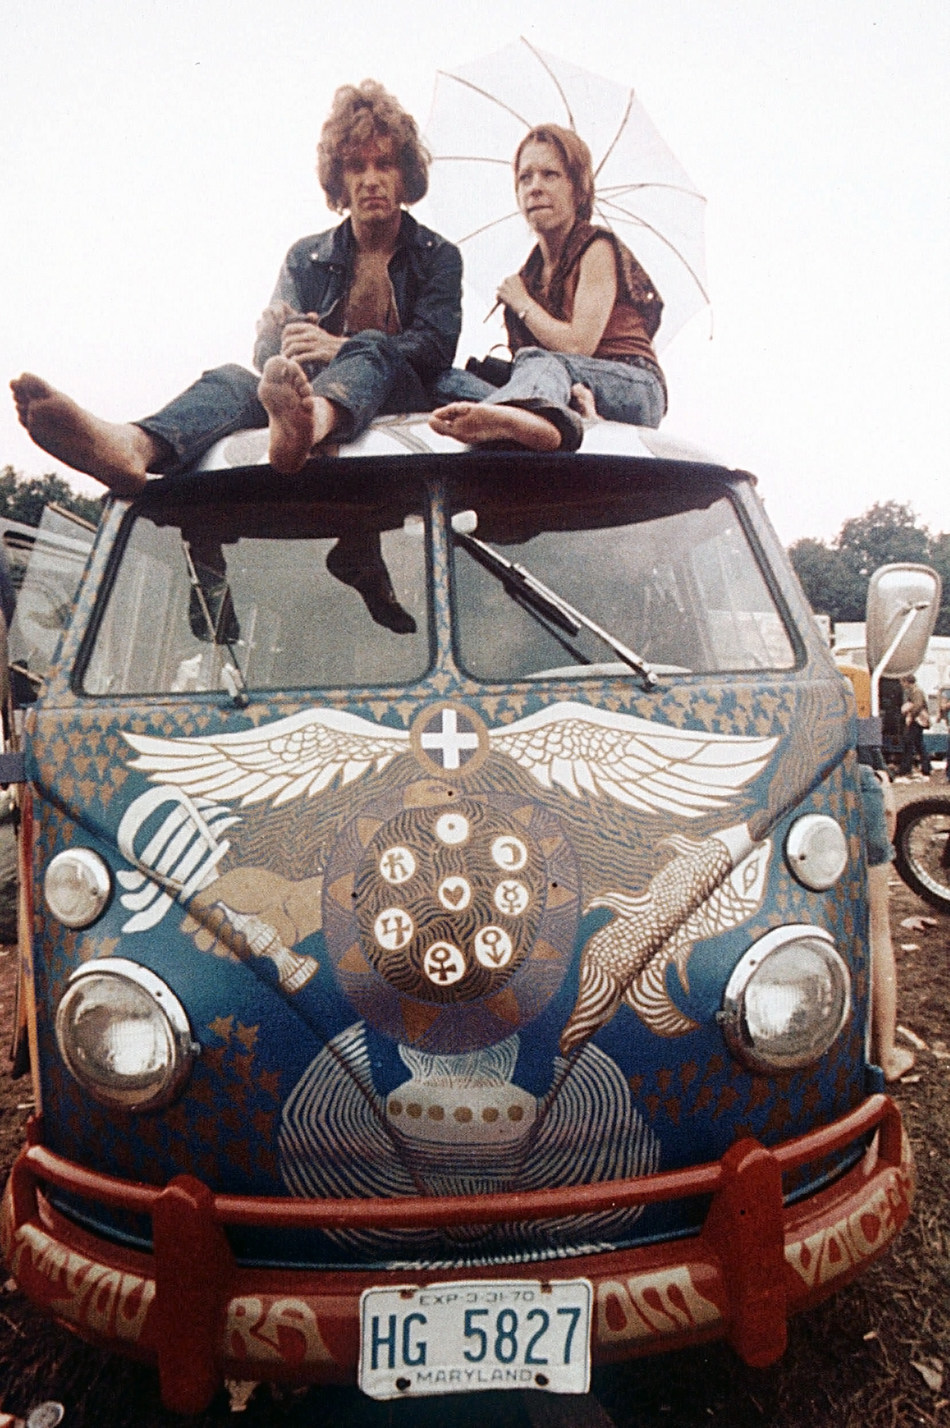 Light, The Woodstock Bus in 1969. Credit: Associated Press